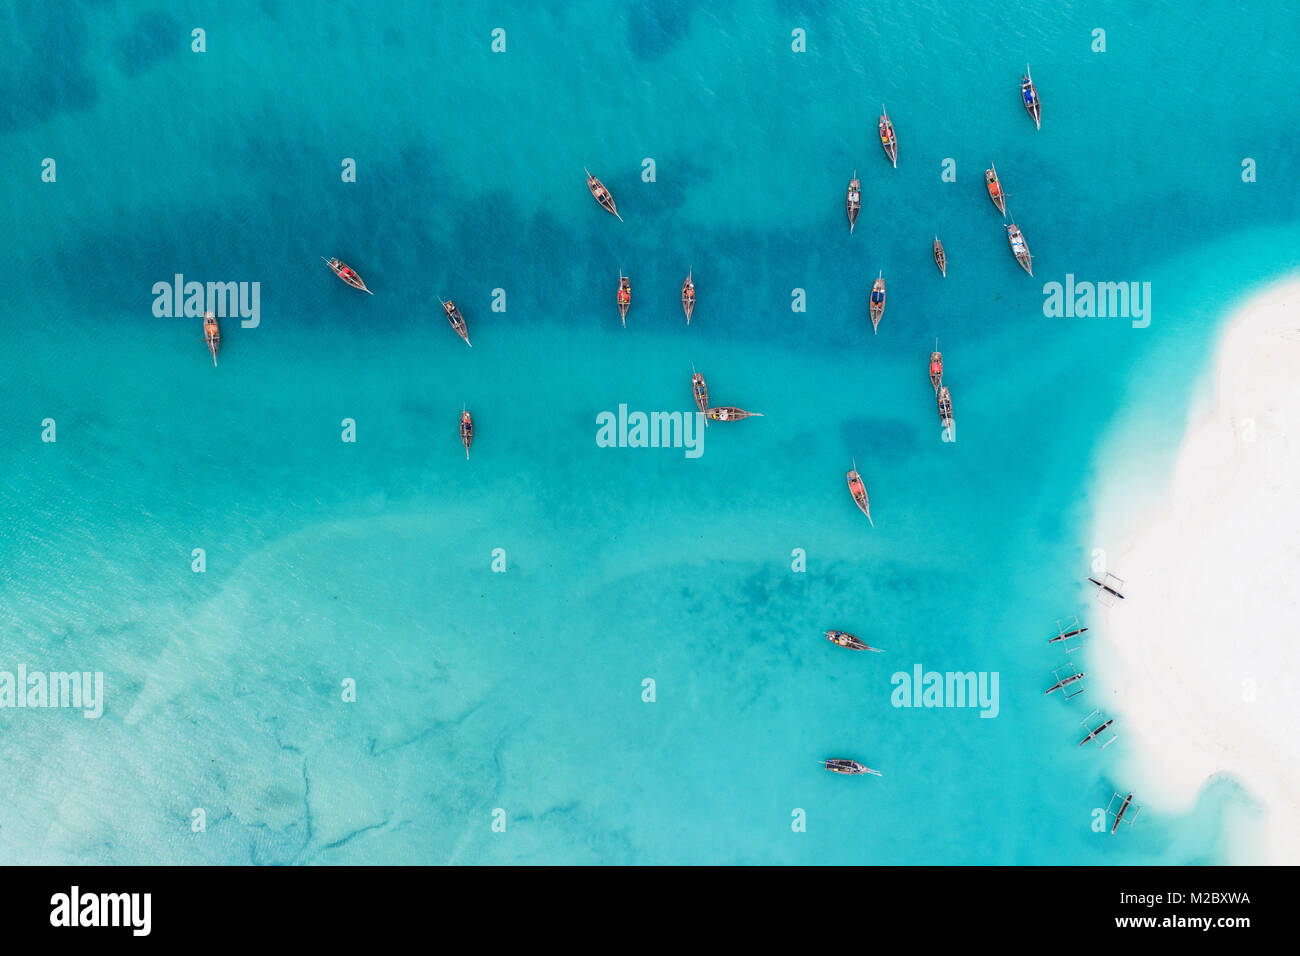 Aerial view of wooden fisherman boats and white sandy beach at Kendwa village, Zanzibar - Stock Image